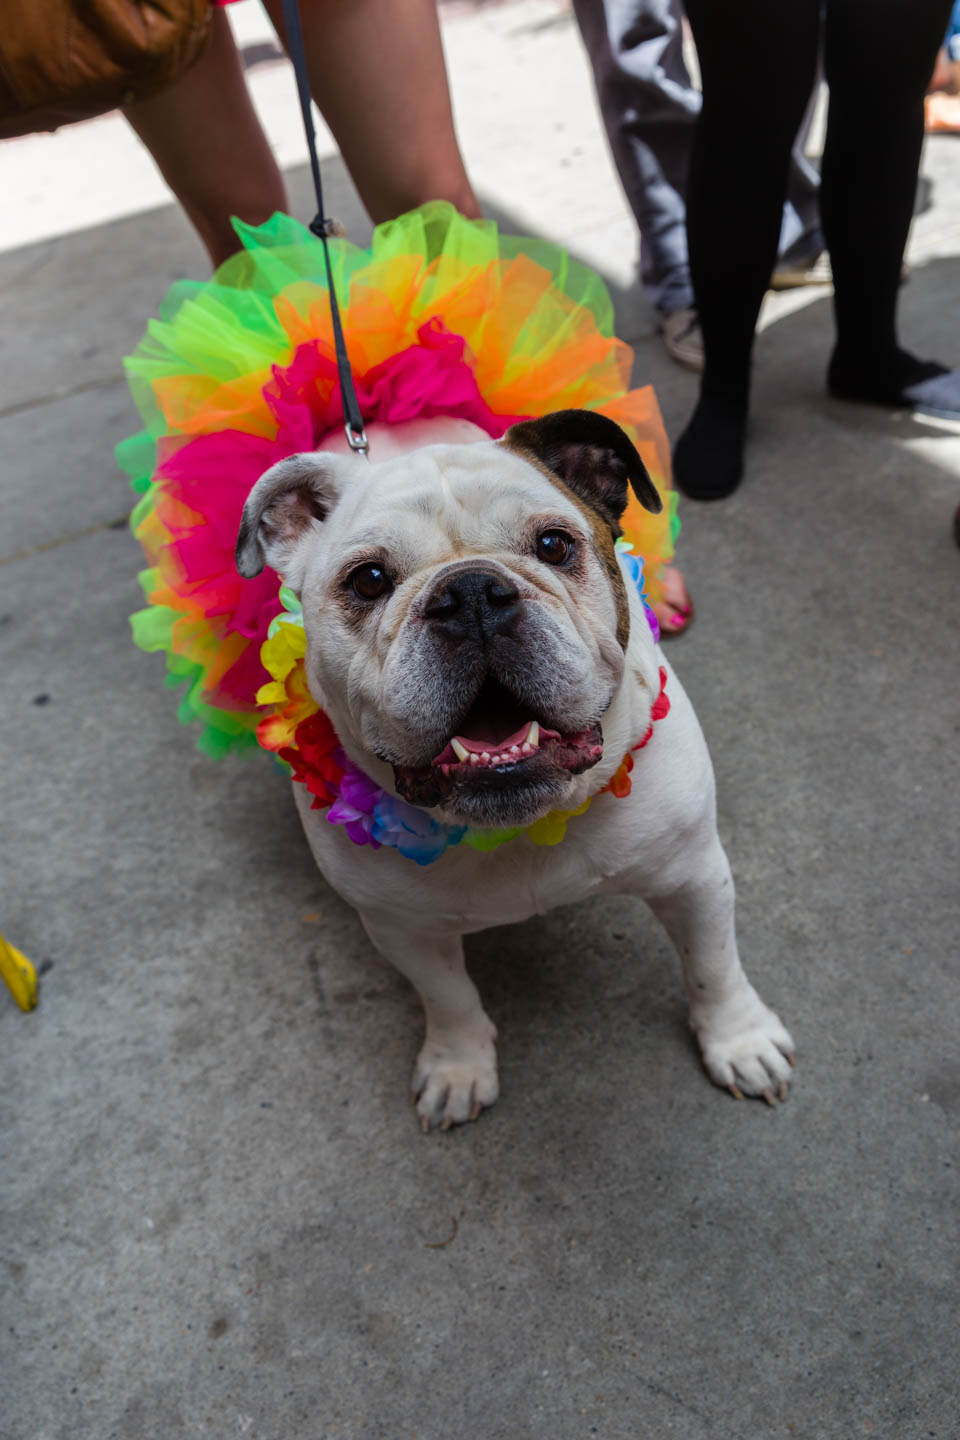 It's the Pride English Bulldog